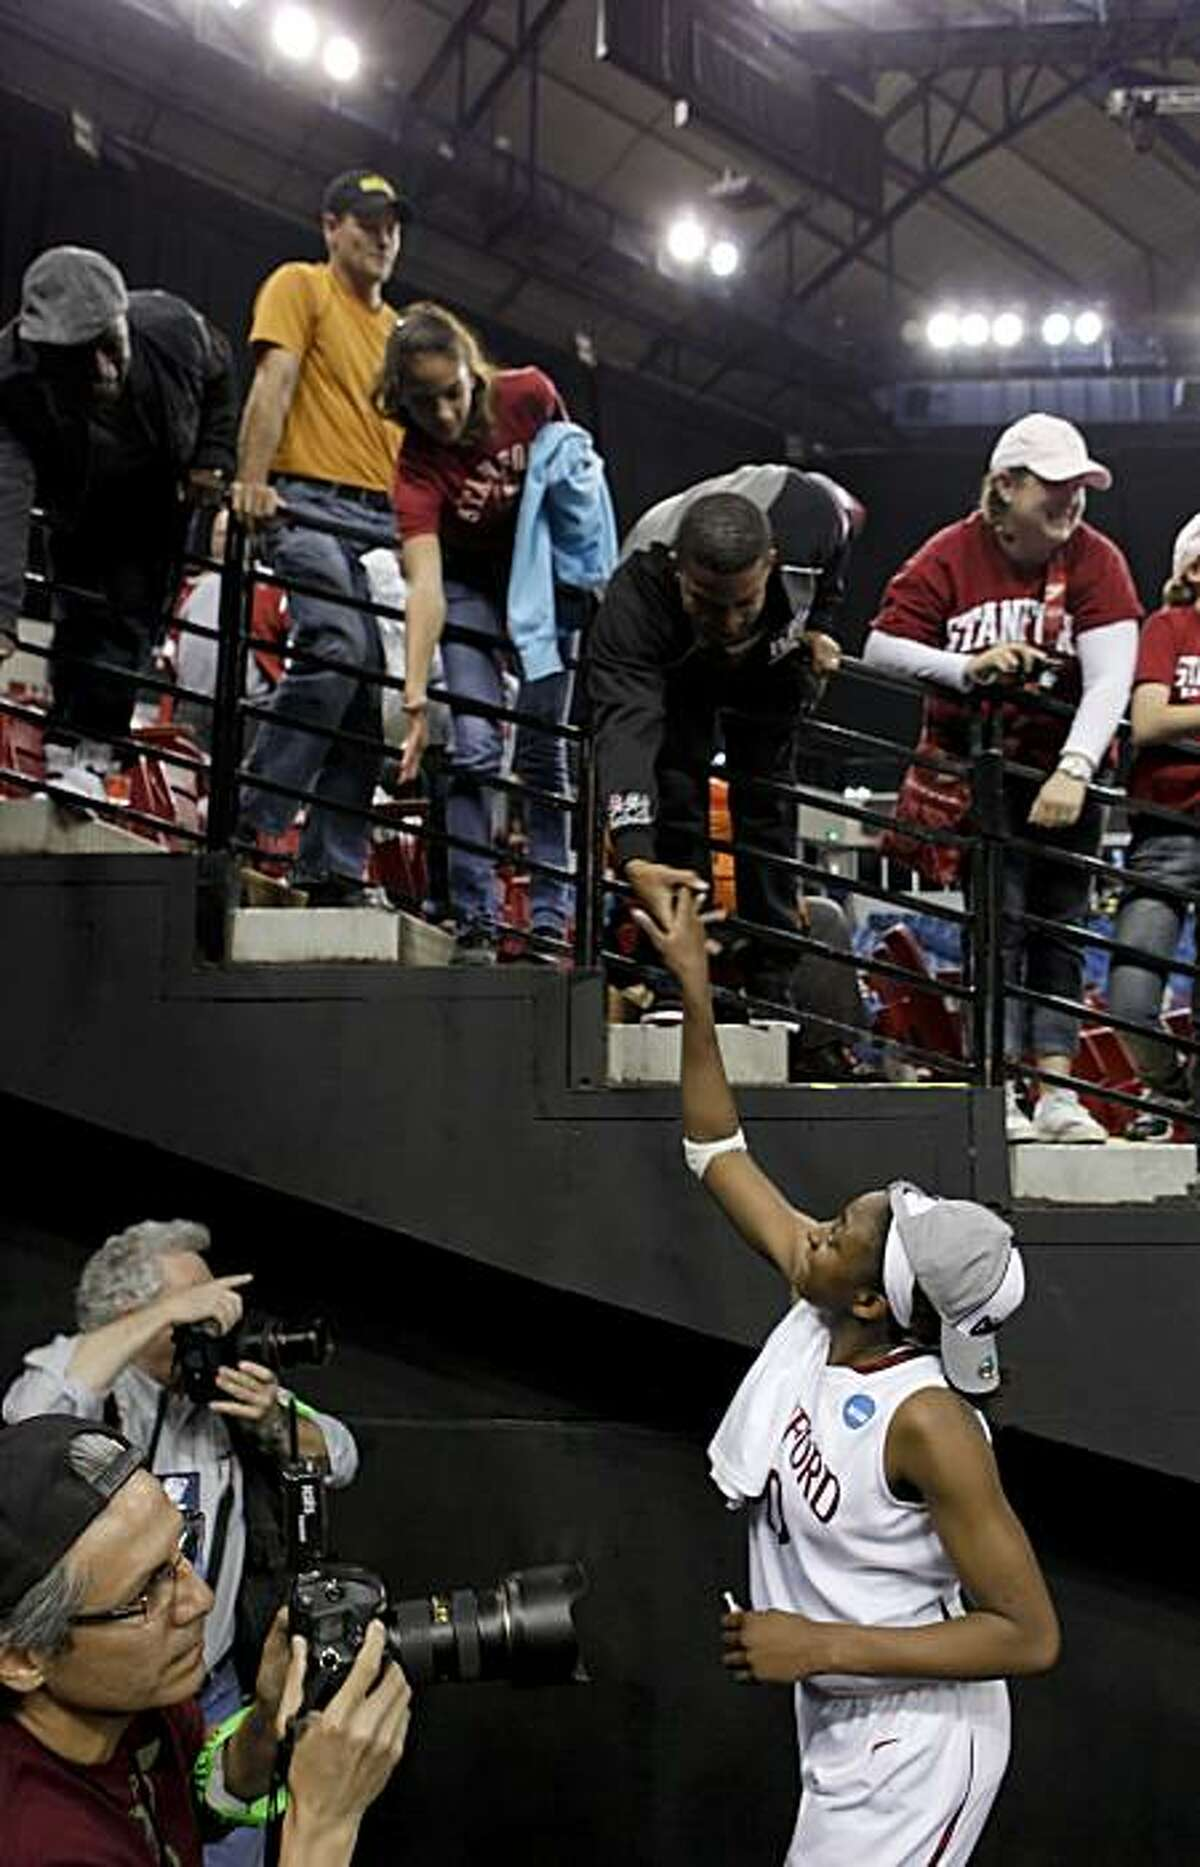 Stanford's Nnemkadi Ogwumike thanks fans after Stanford beat Xavier in the regional final of the 2010 NCAA Women's Basketball Tournament at Arco Arena in Sacramento on Monday.